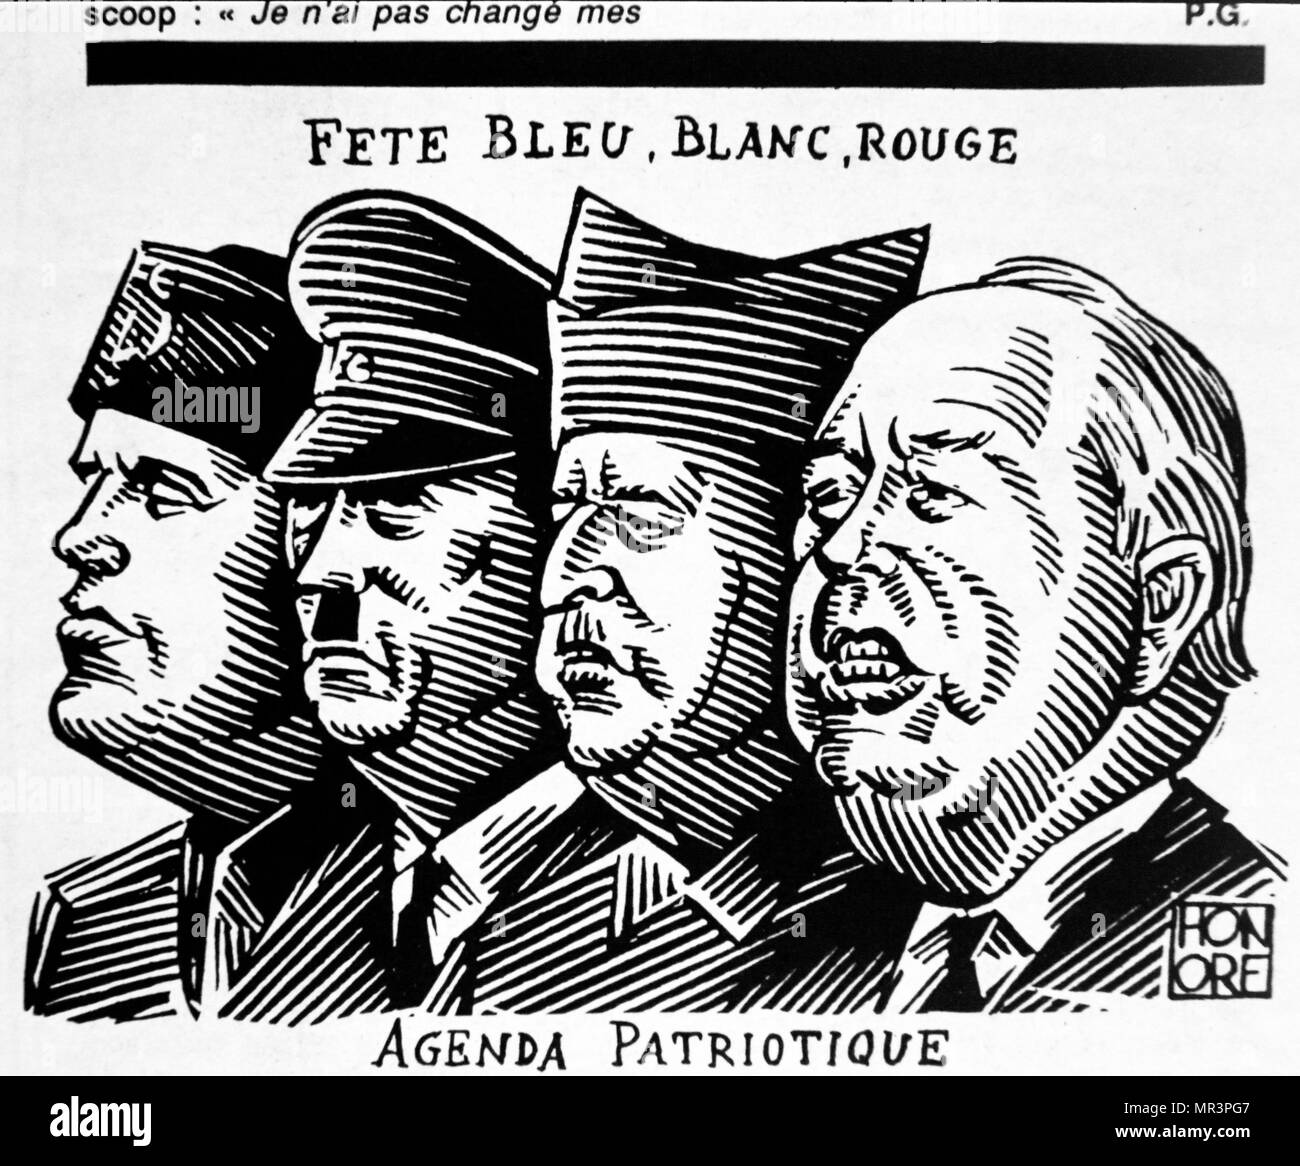 Cartoon depicting the French National Front leader, Jean Marie la Pen, alongside Franco, Hitler and Mussolini, Published 1991 in the French; Magazine 'La Grosse Bertha' a weekly satirical magazine. - Stock Image